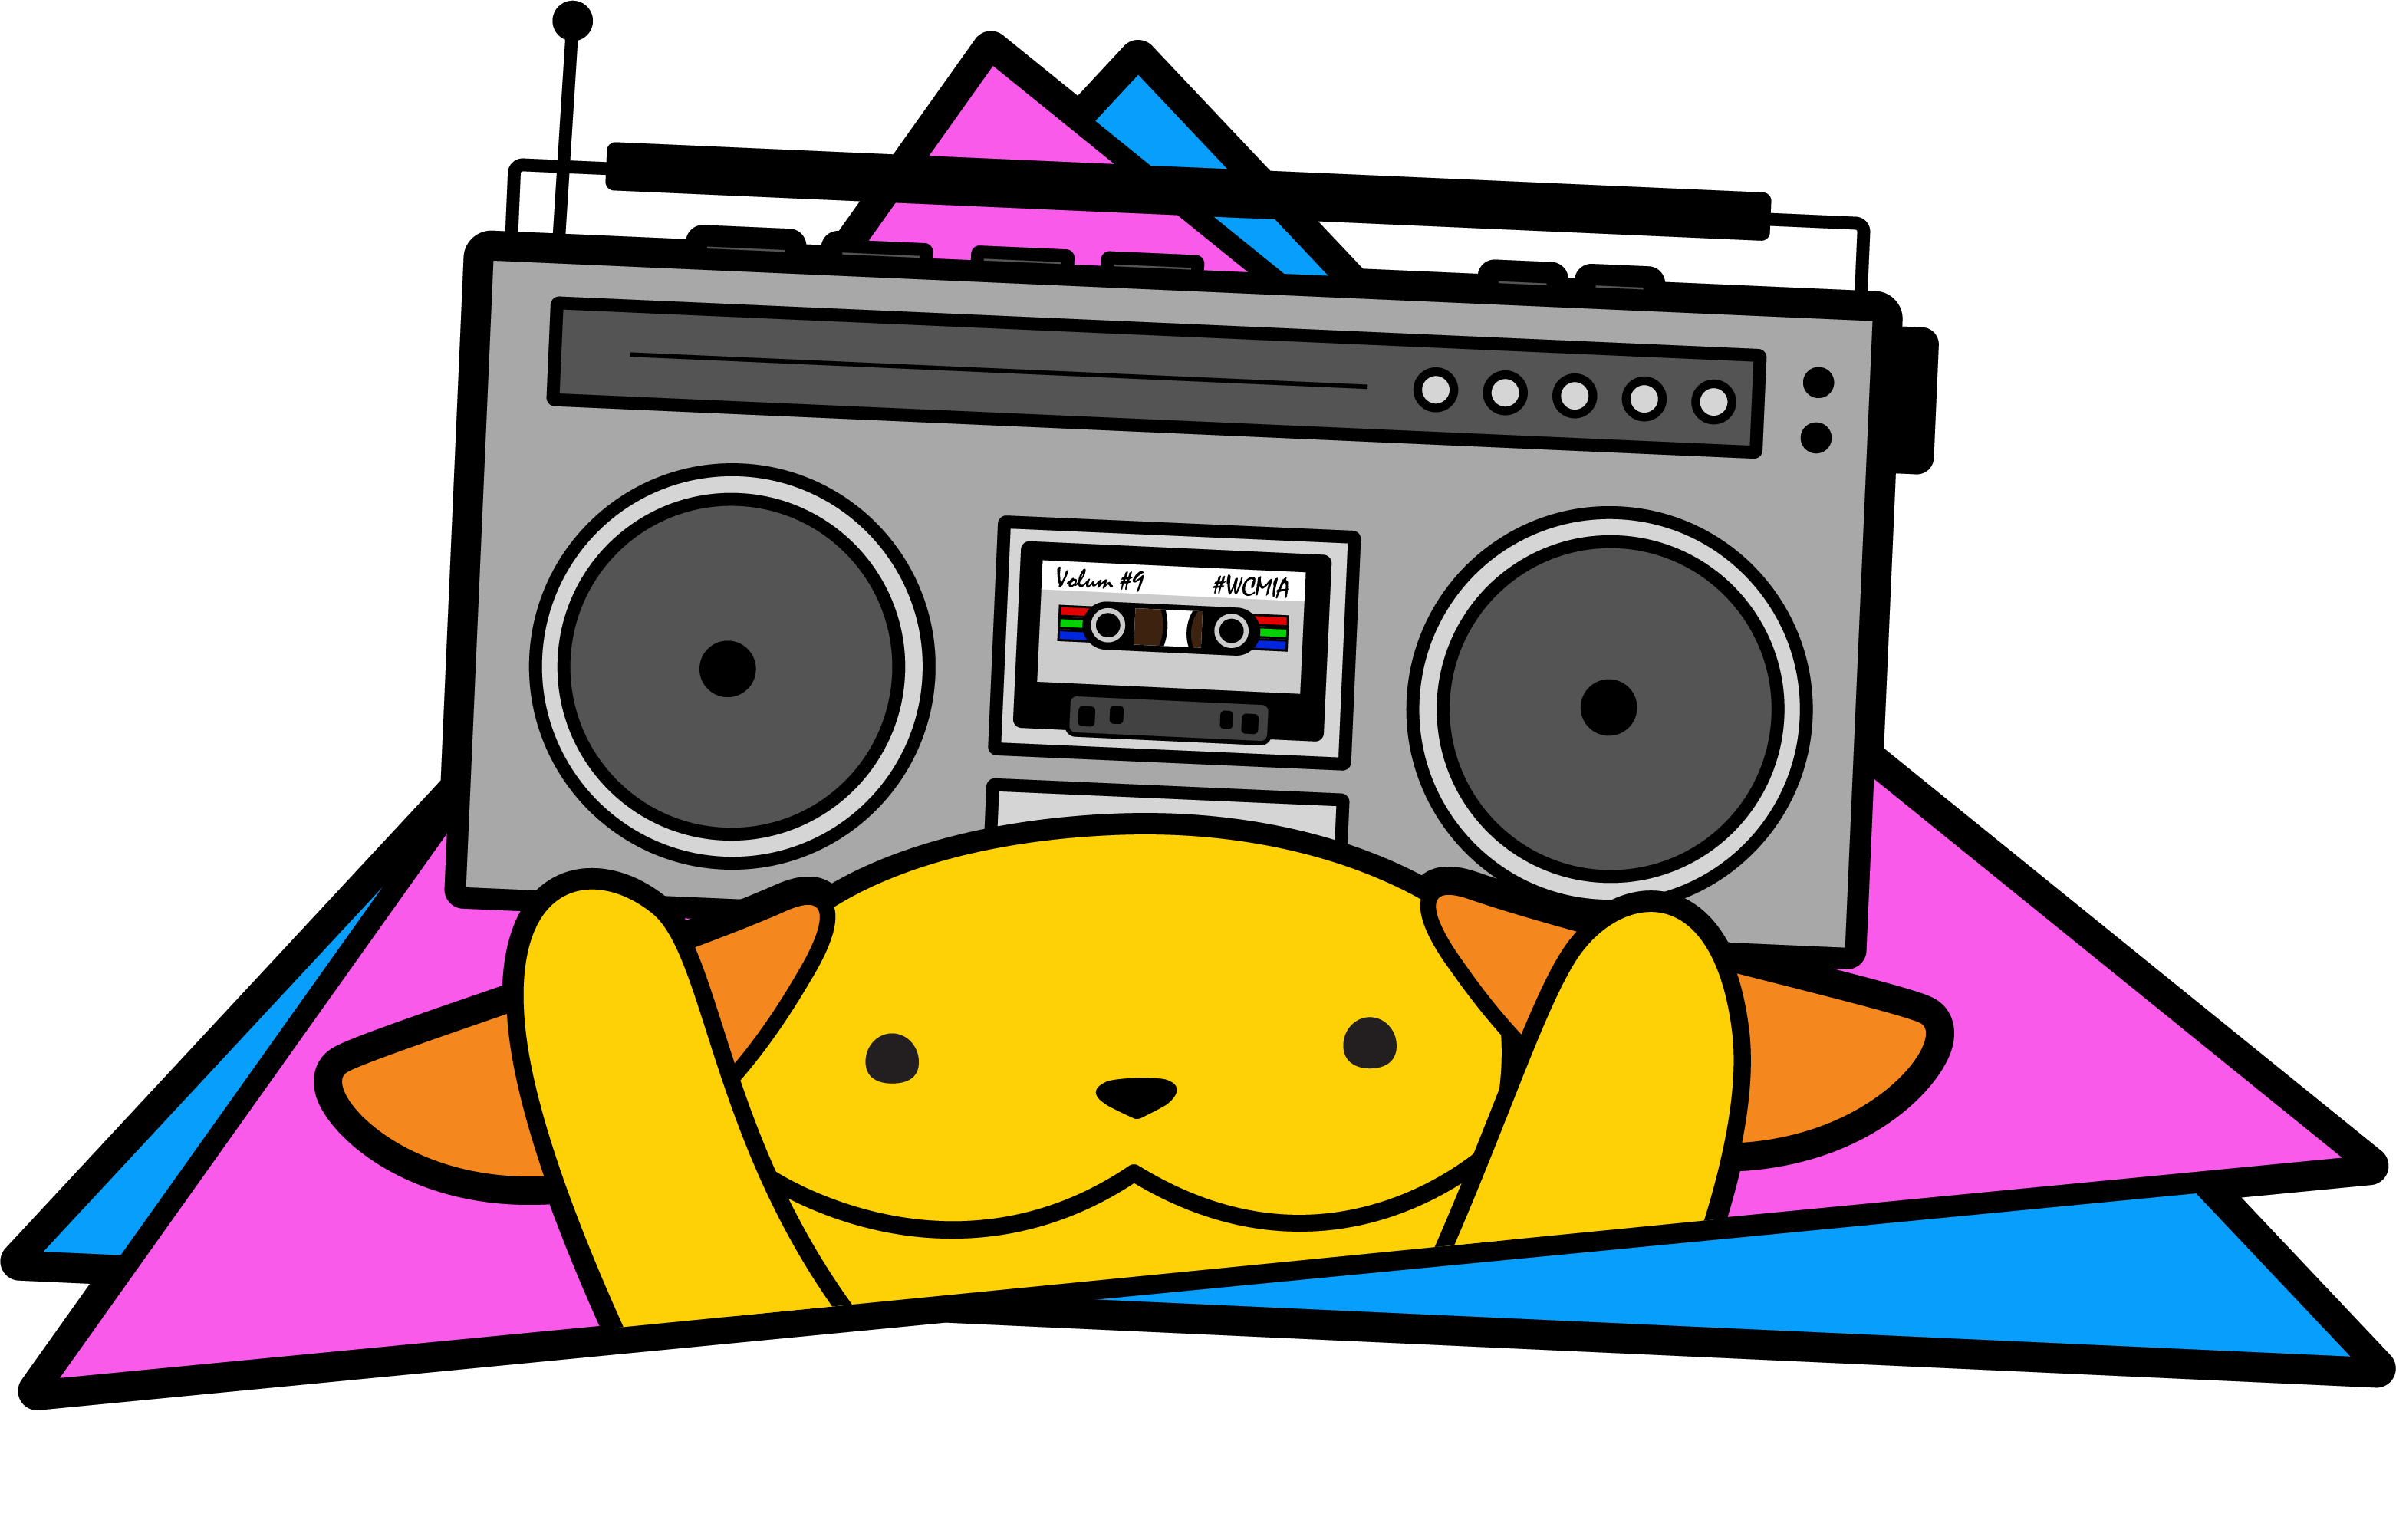 png transparent stock Boombox clipart purple. Lloyd wapuus